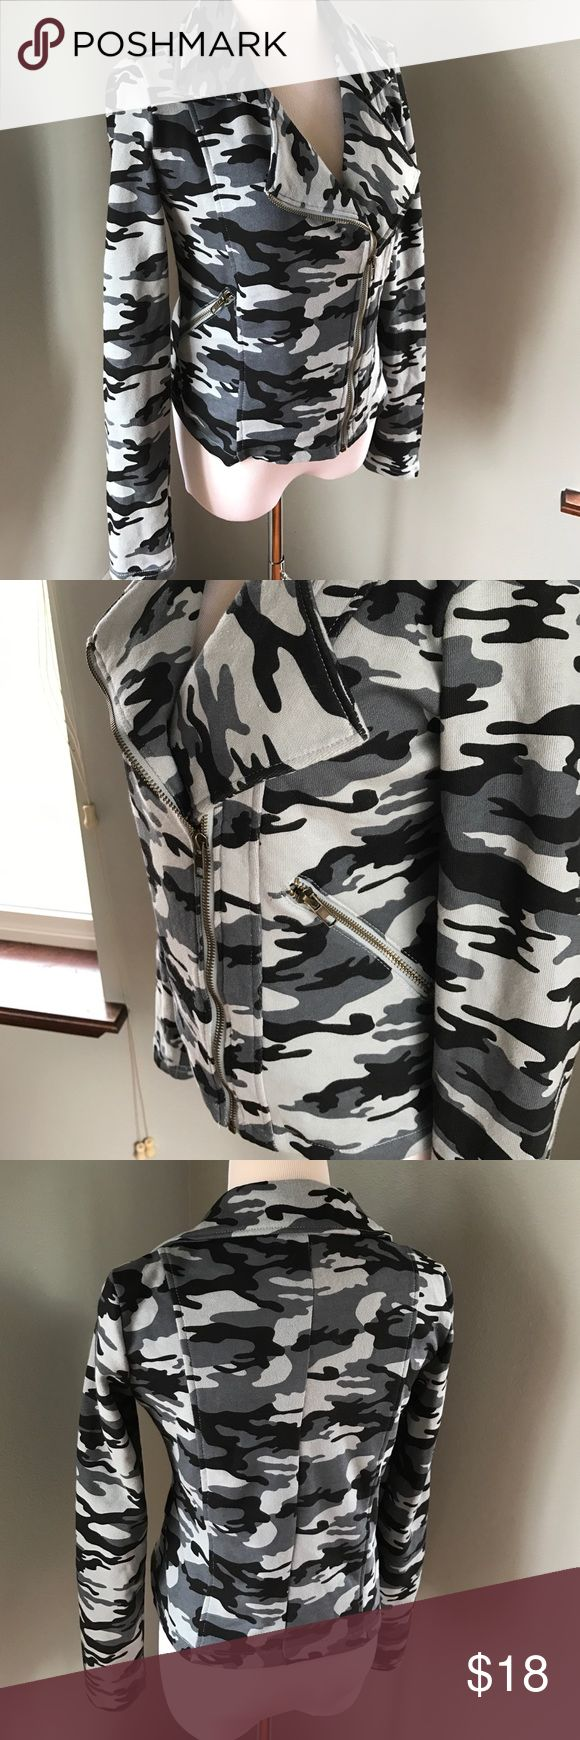 Rue21 Camouflage Sweatshirt Jacket Zip Up Like new condition. Really cozy and warm. Rue 21 Tops Sweatshirts & Hoodies